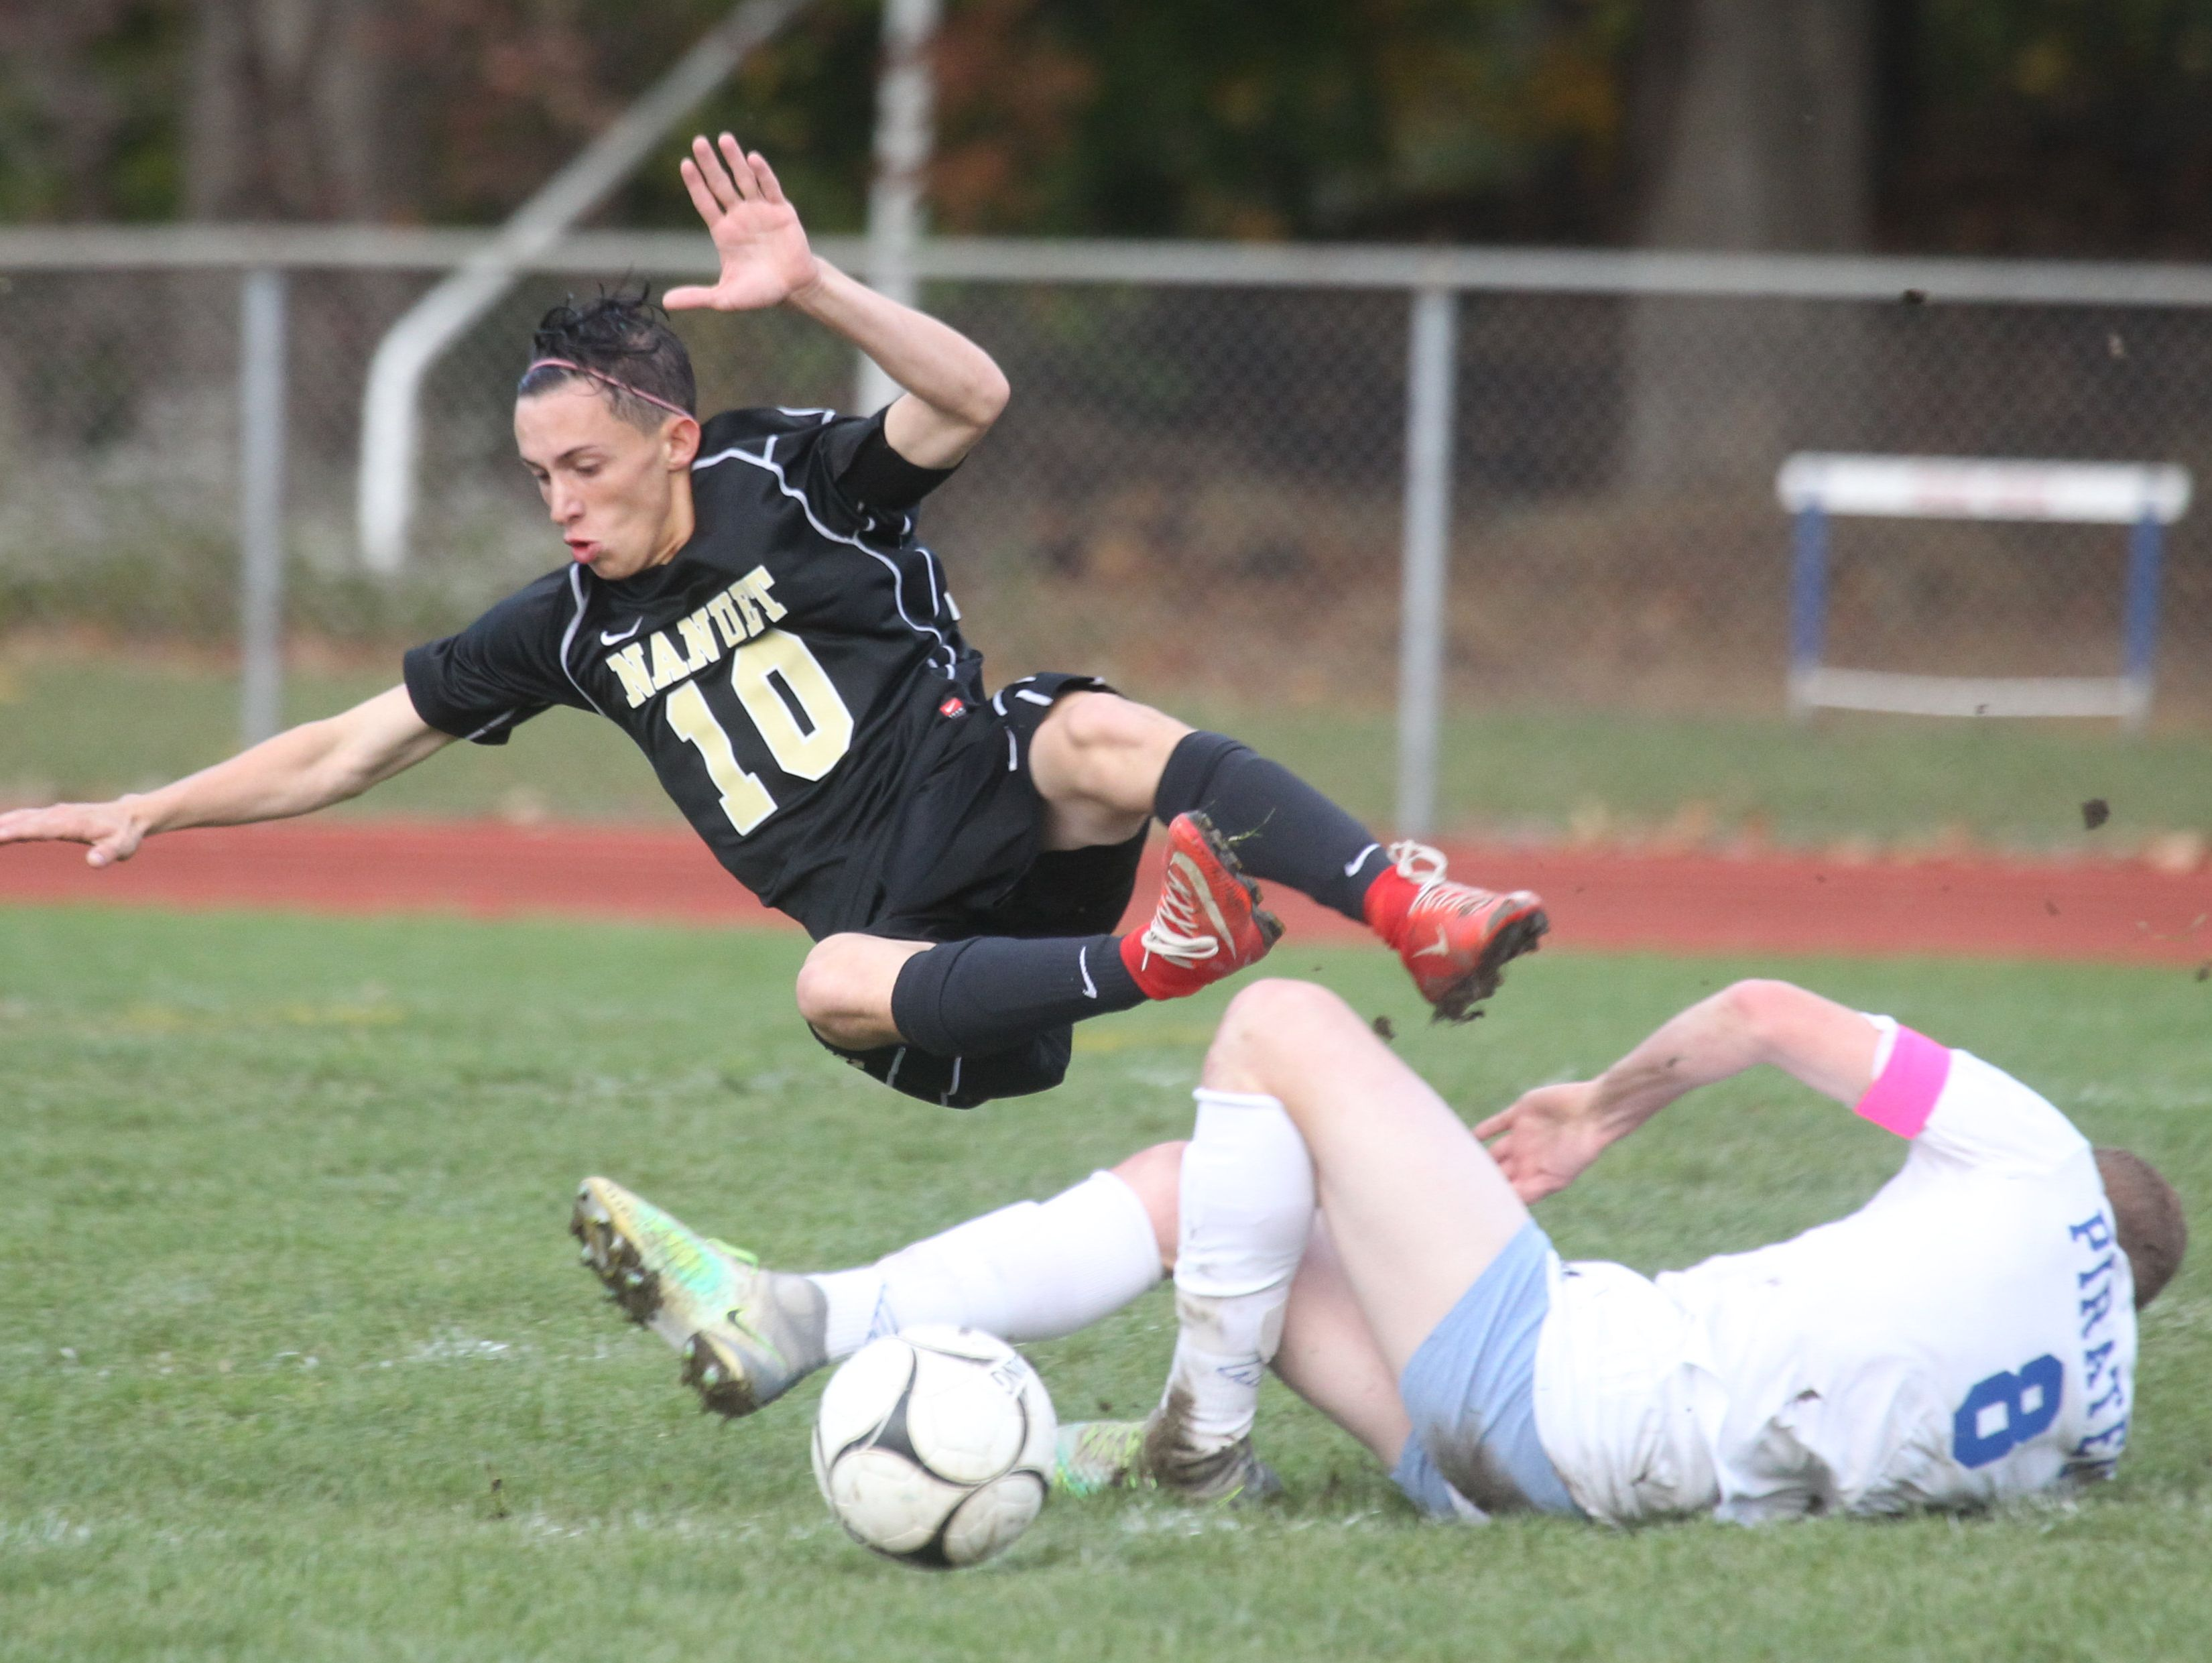 Nanuet's Nick Iozzo flies over Pearl River's Timmy Valentine during their Class A boys soccer quarterfinal at Pear River Oct. 24, 2016. Pearl River won 2-1 in overtime.